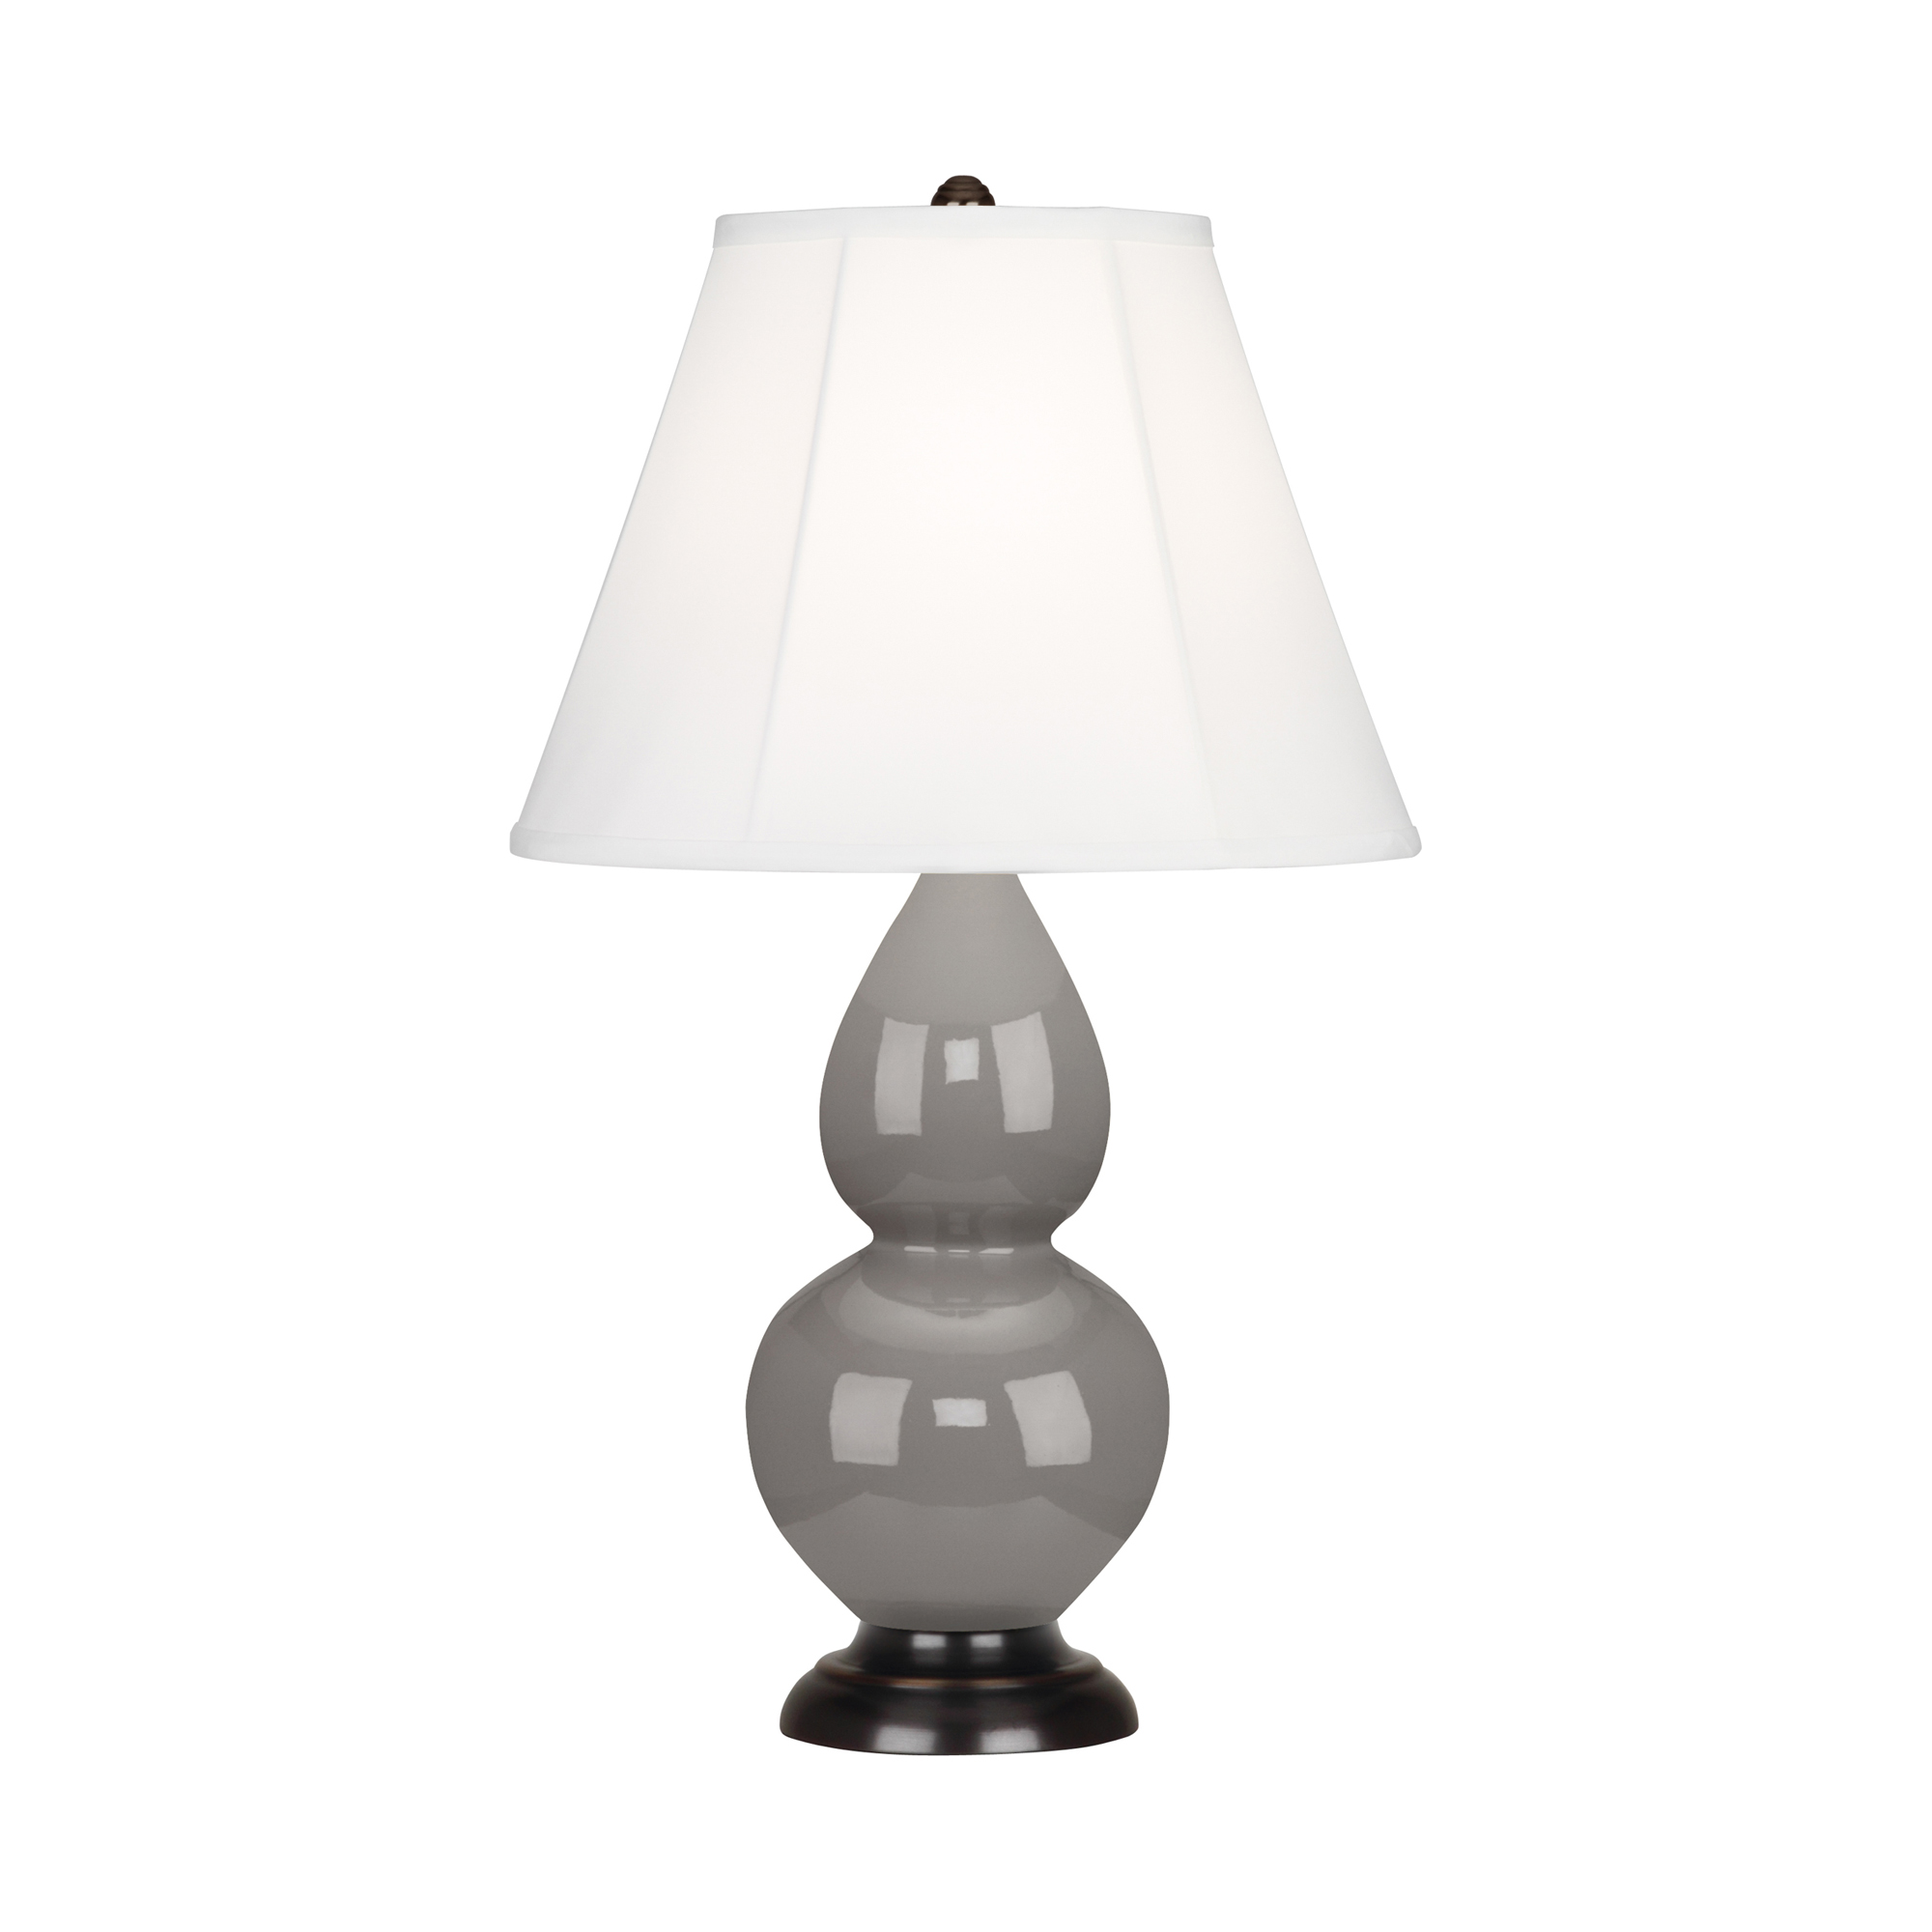 Small Double Gourd Accent Lamp Style #1769